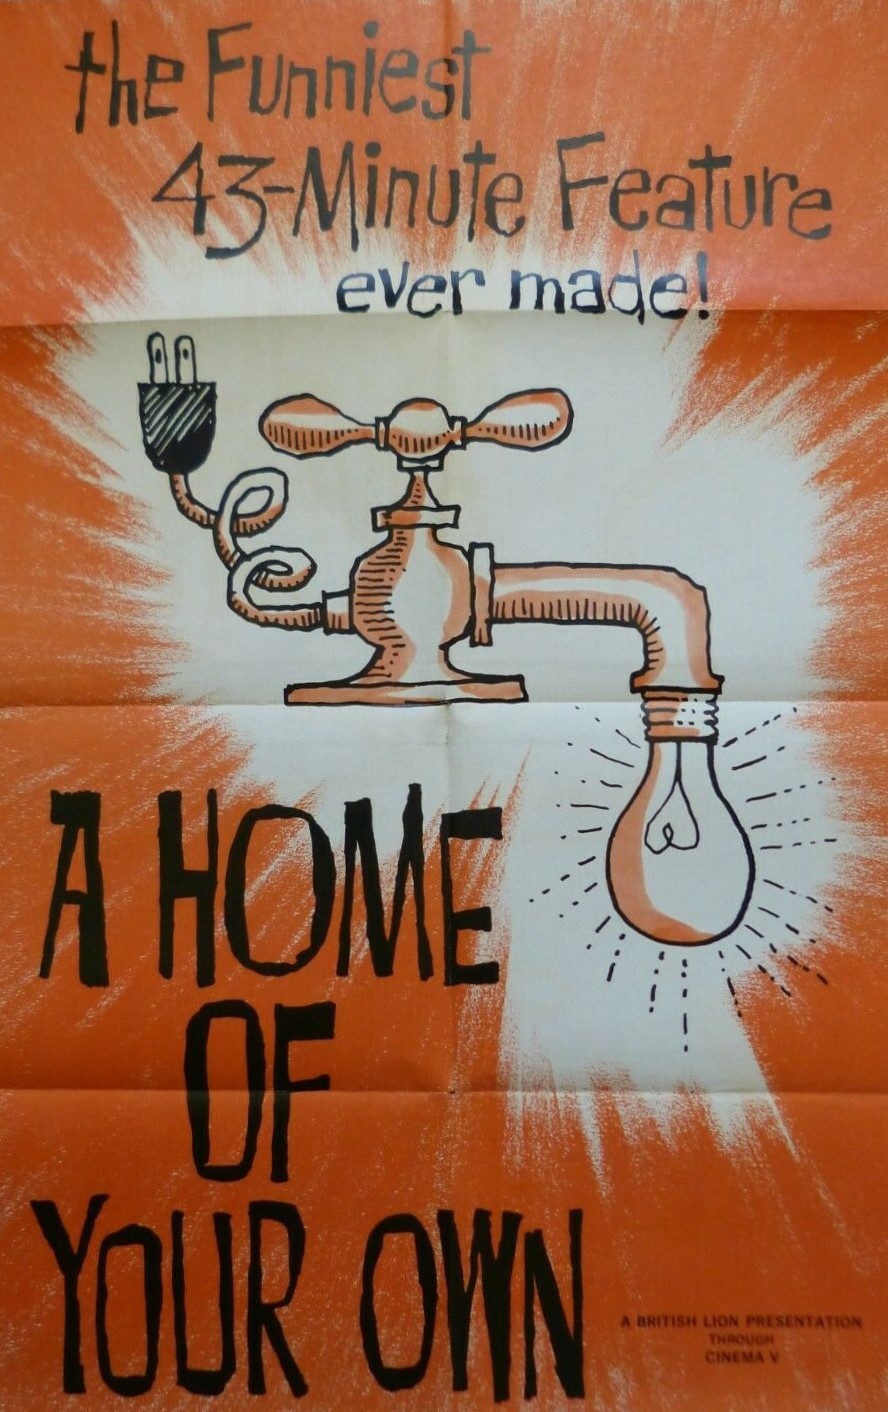 A Home of Your Own (1964)***